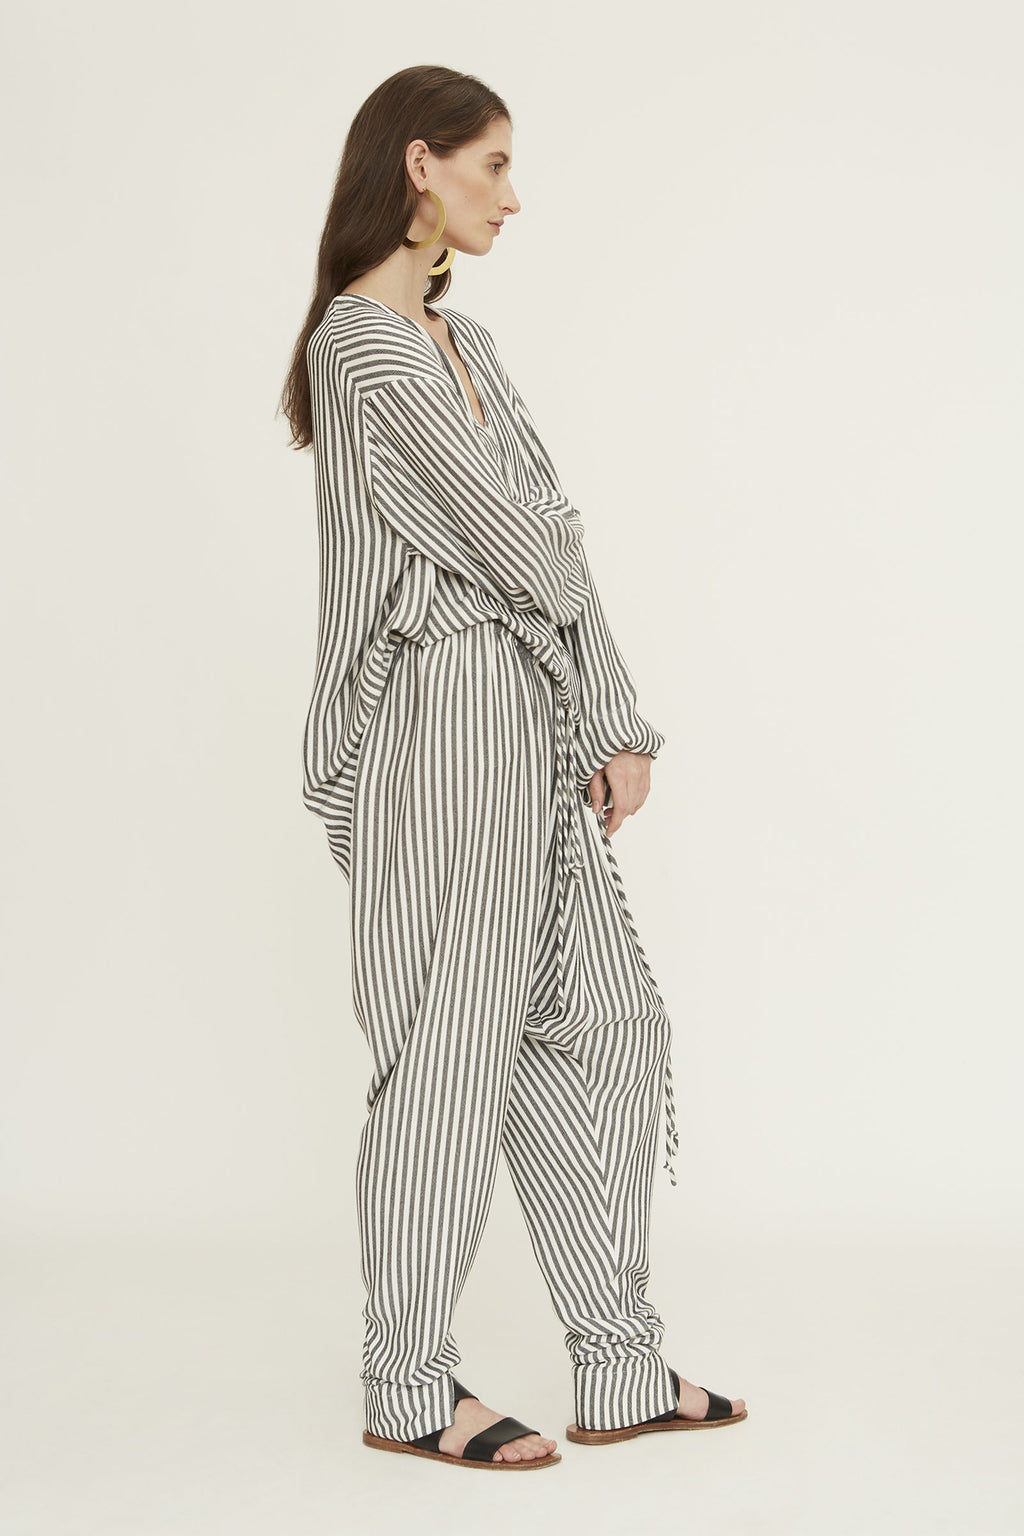 Marrakech Pant in Stripe